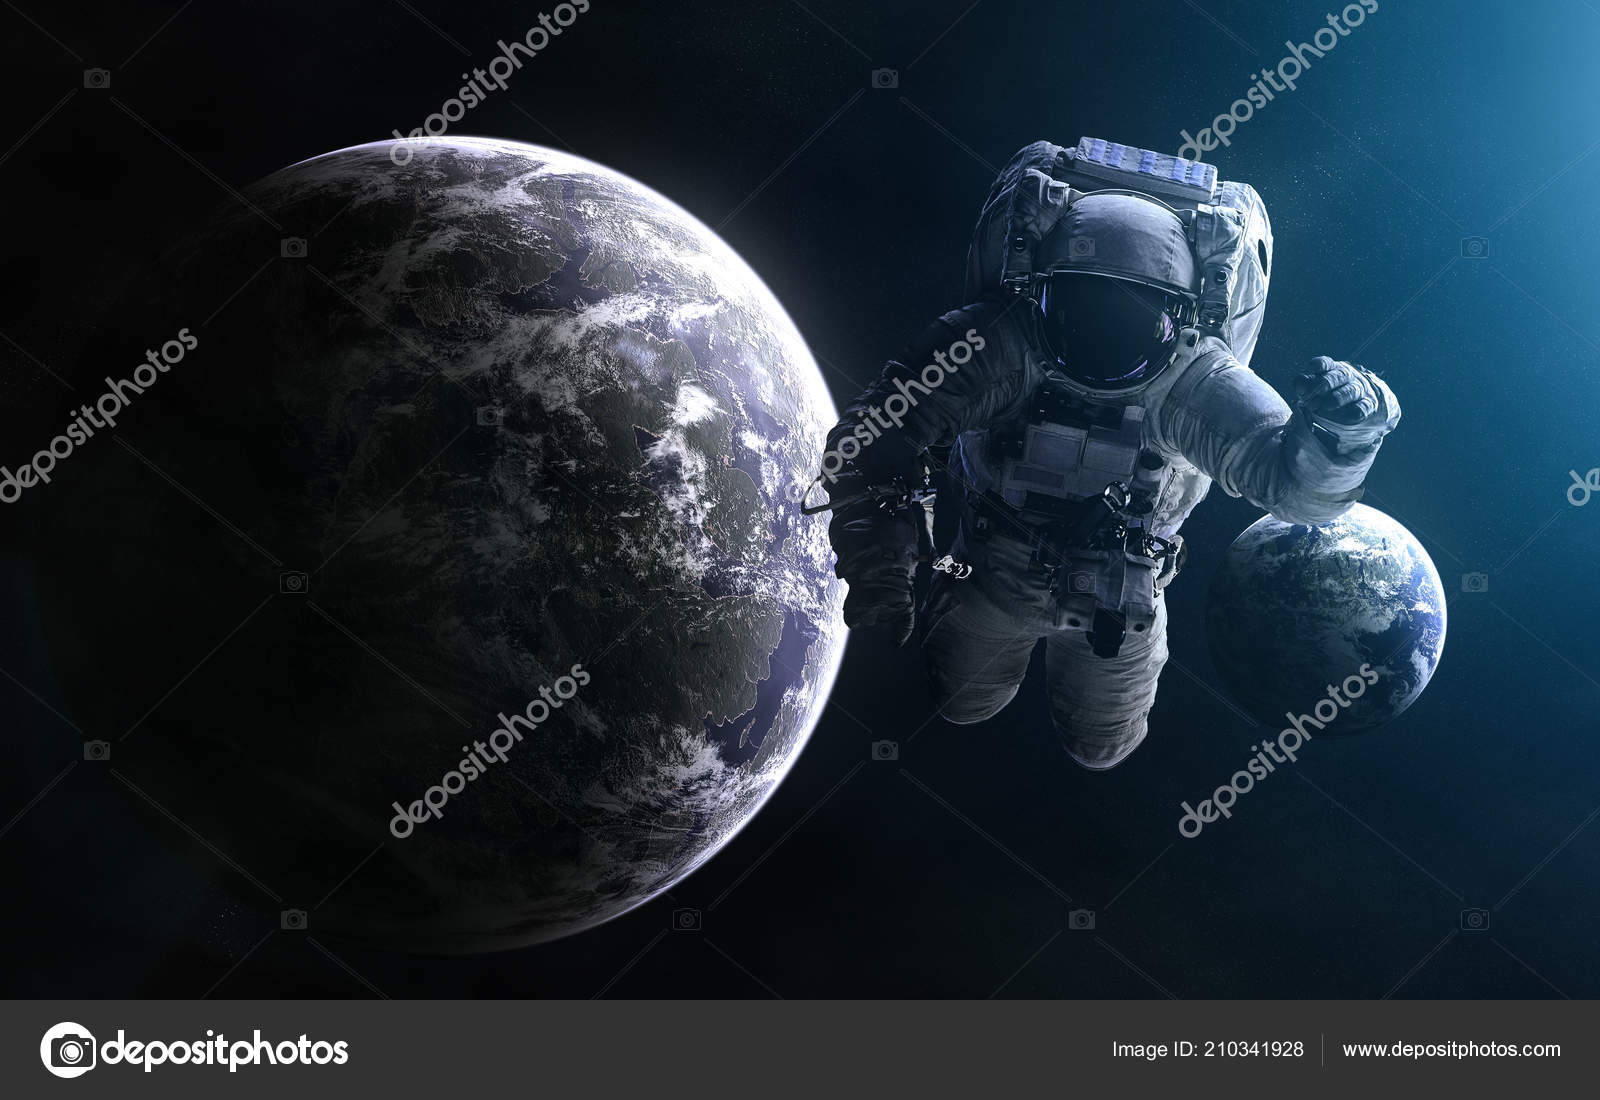 Astronaut Wallpaper 4k Astronaut On Background Of Exoplanets In